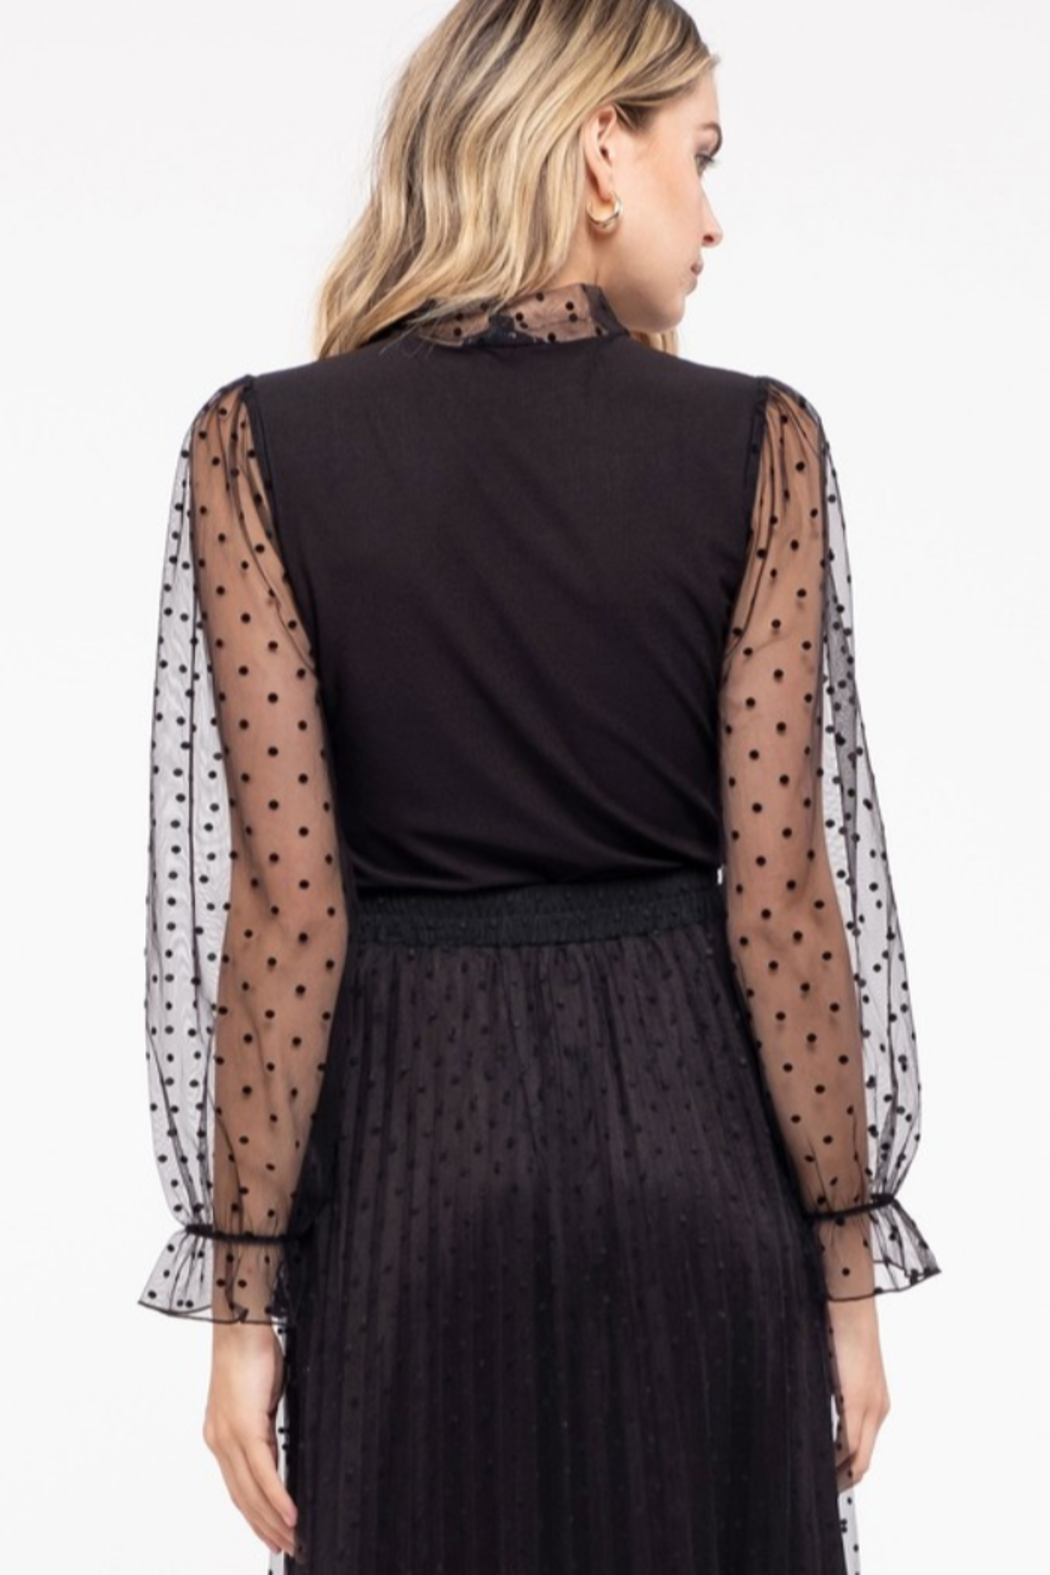 Mine and E&M BOW TIE NECK MESH LACE COMBINATION KNIT TOP - Front Full Image